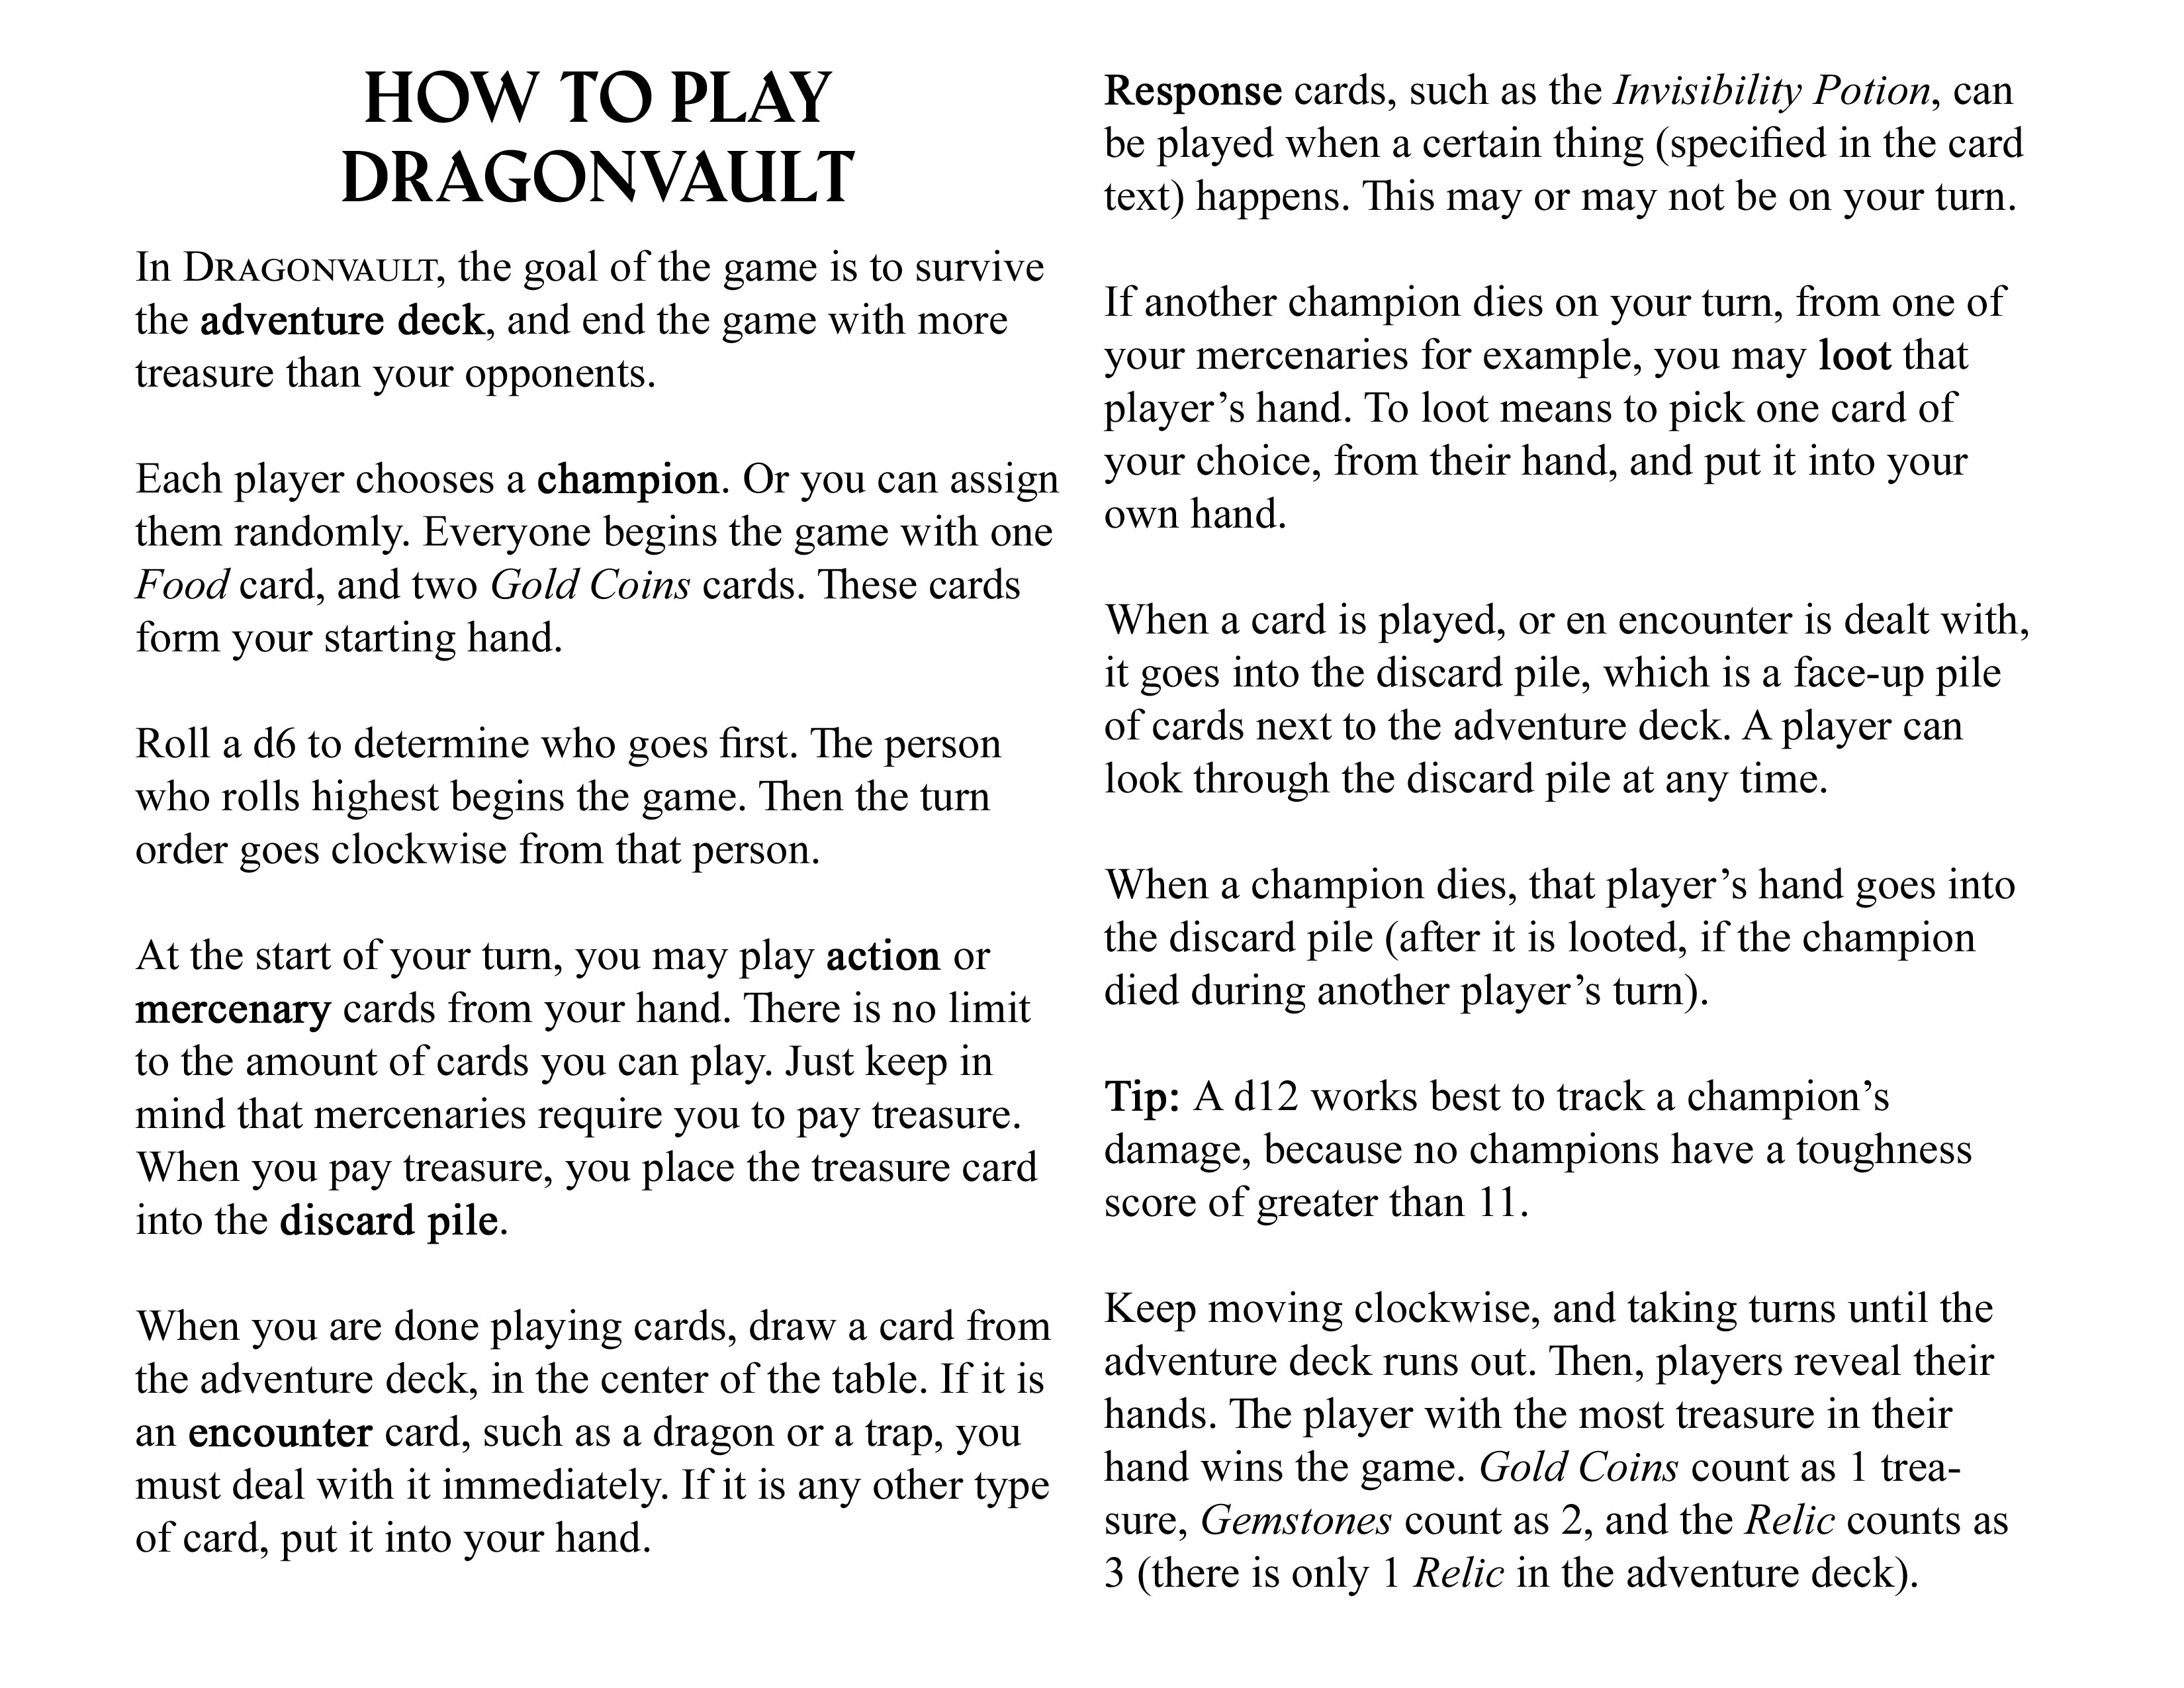 How to Play Dragonvault